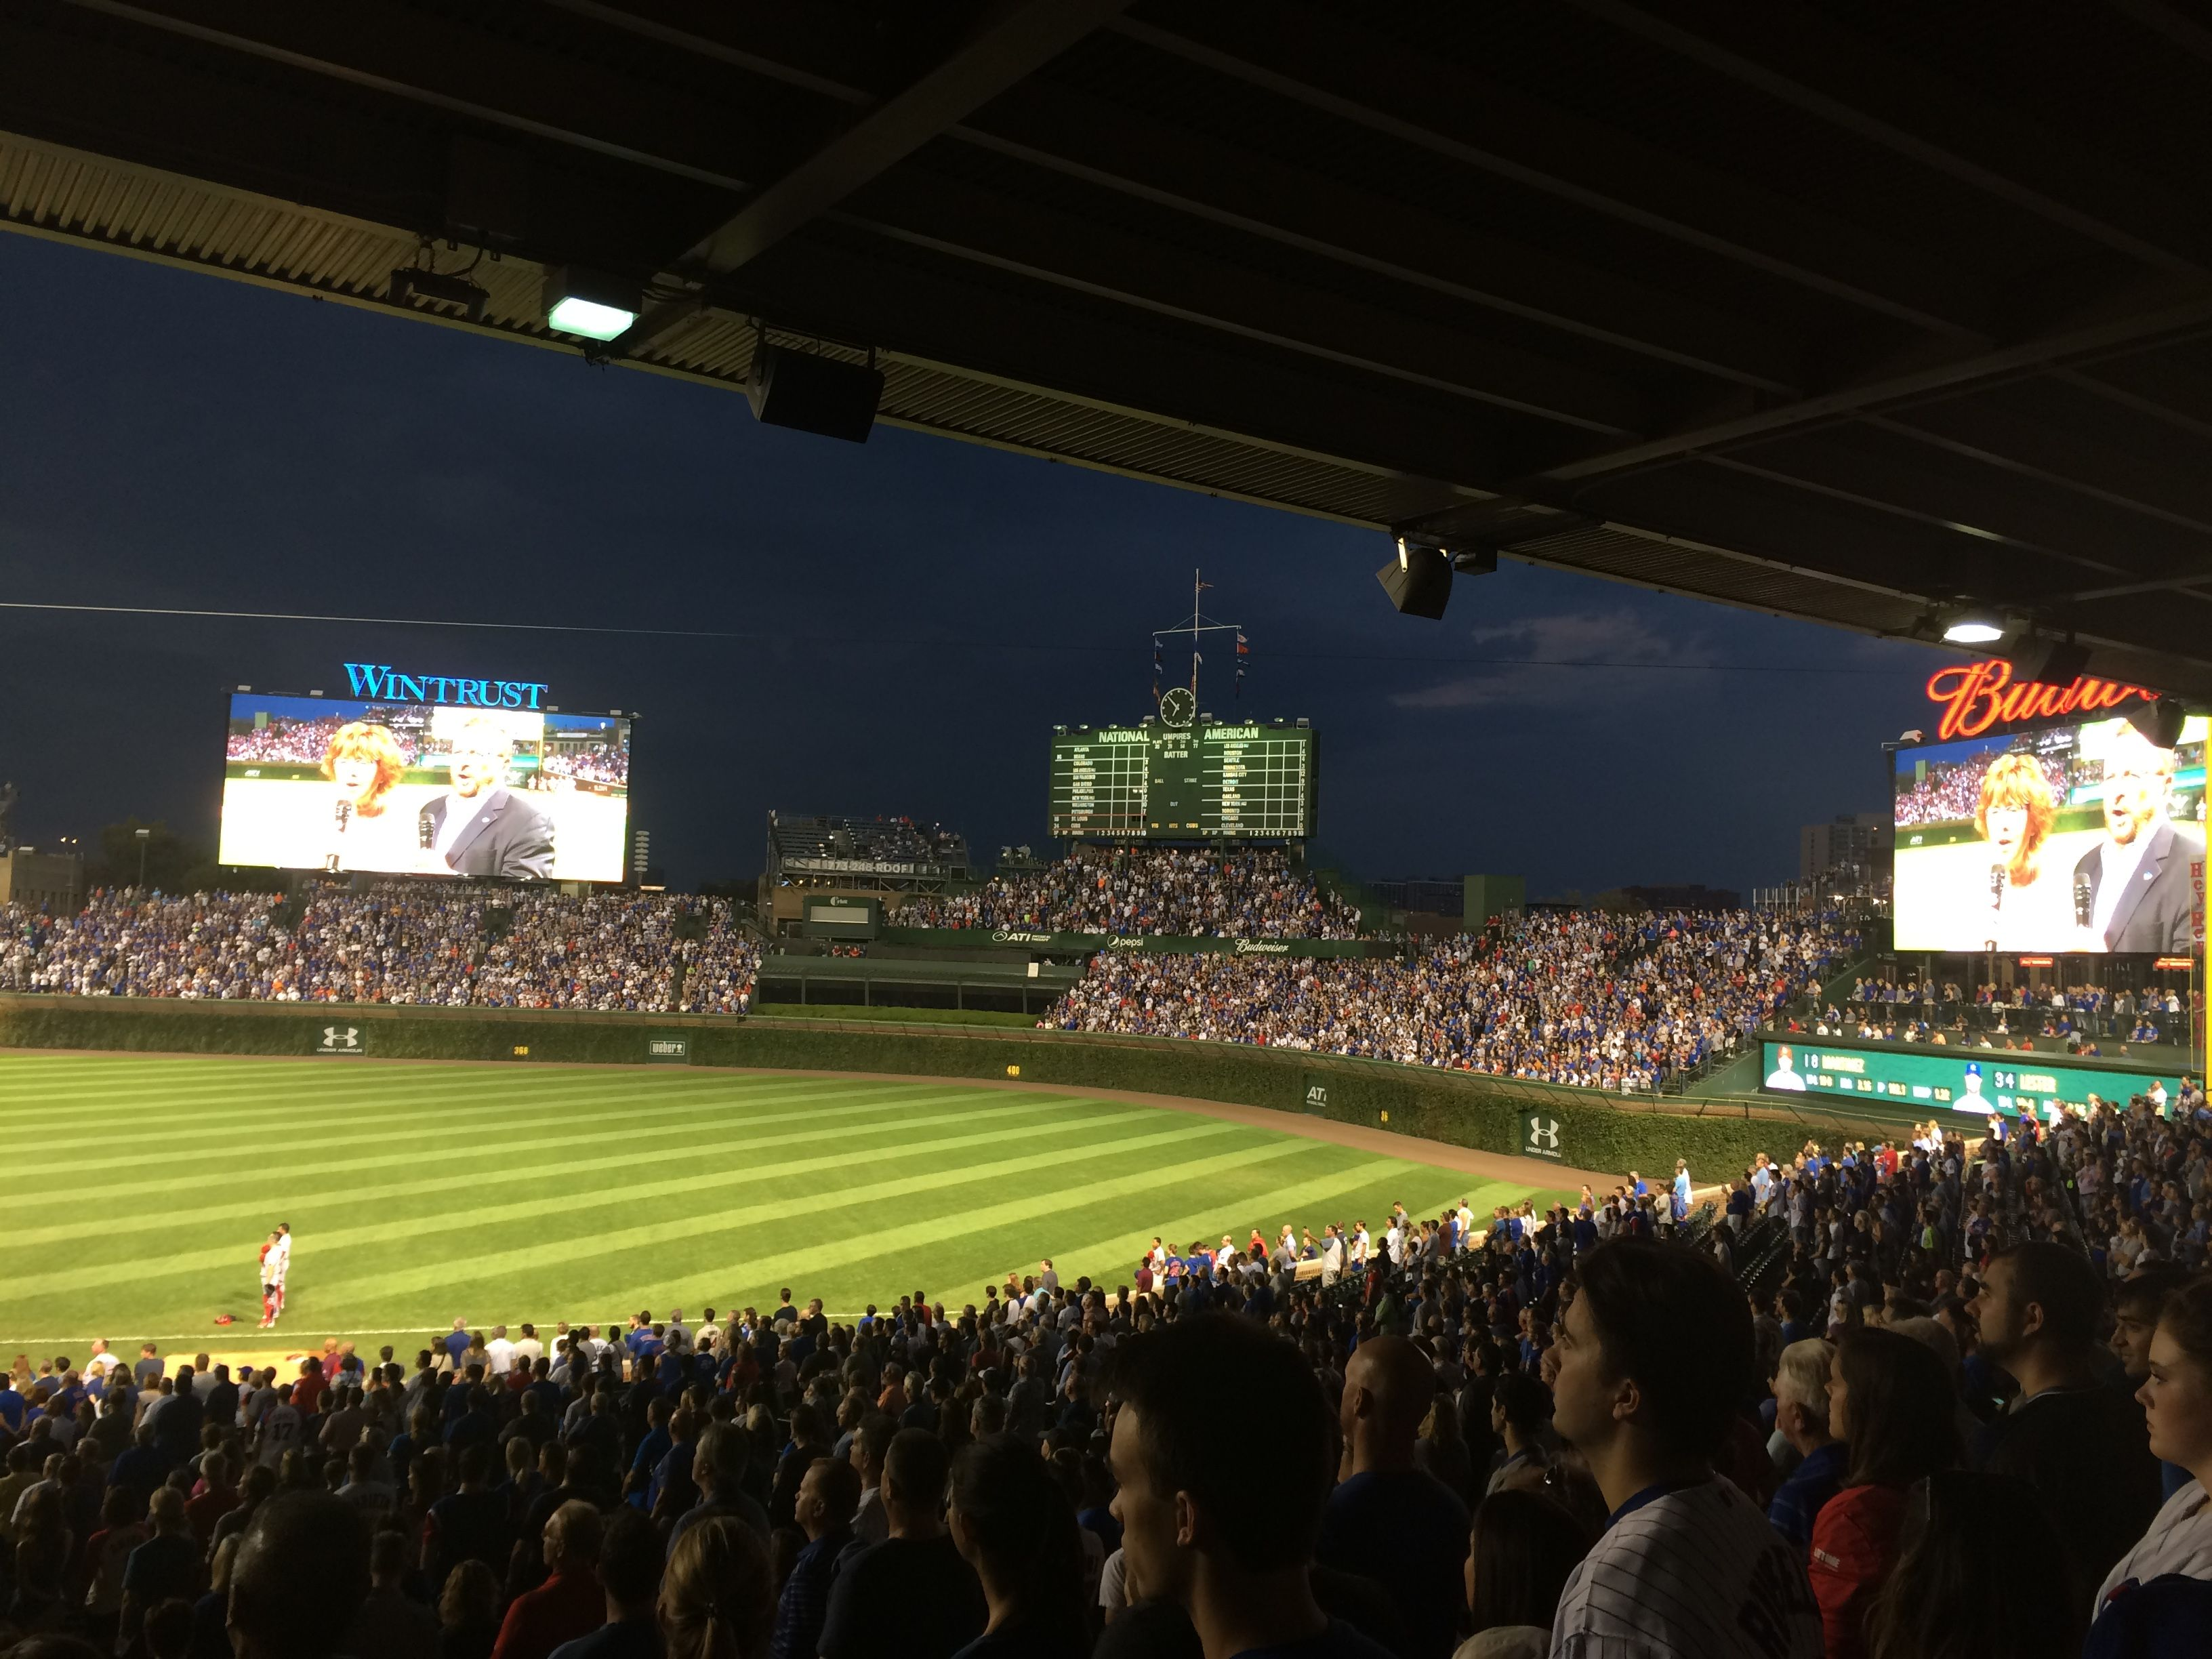 Pin by Catherine Caccavallo on The CUBS | Baseball field